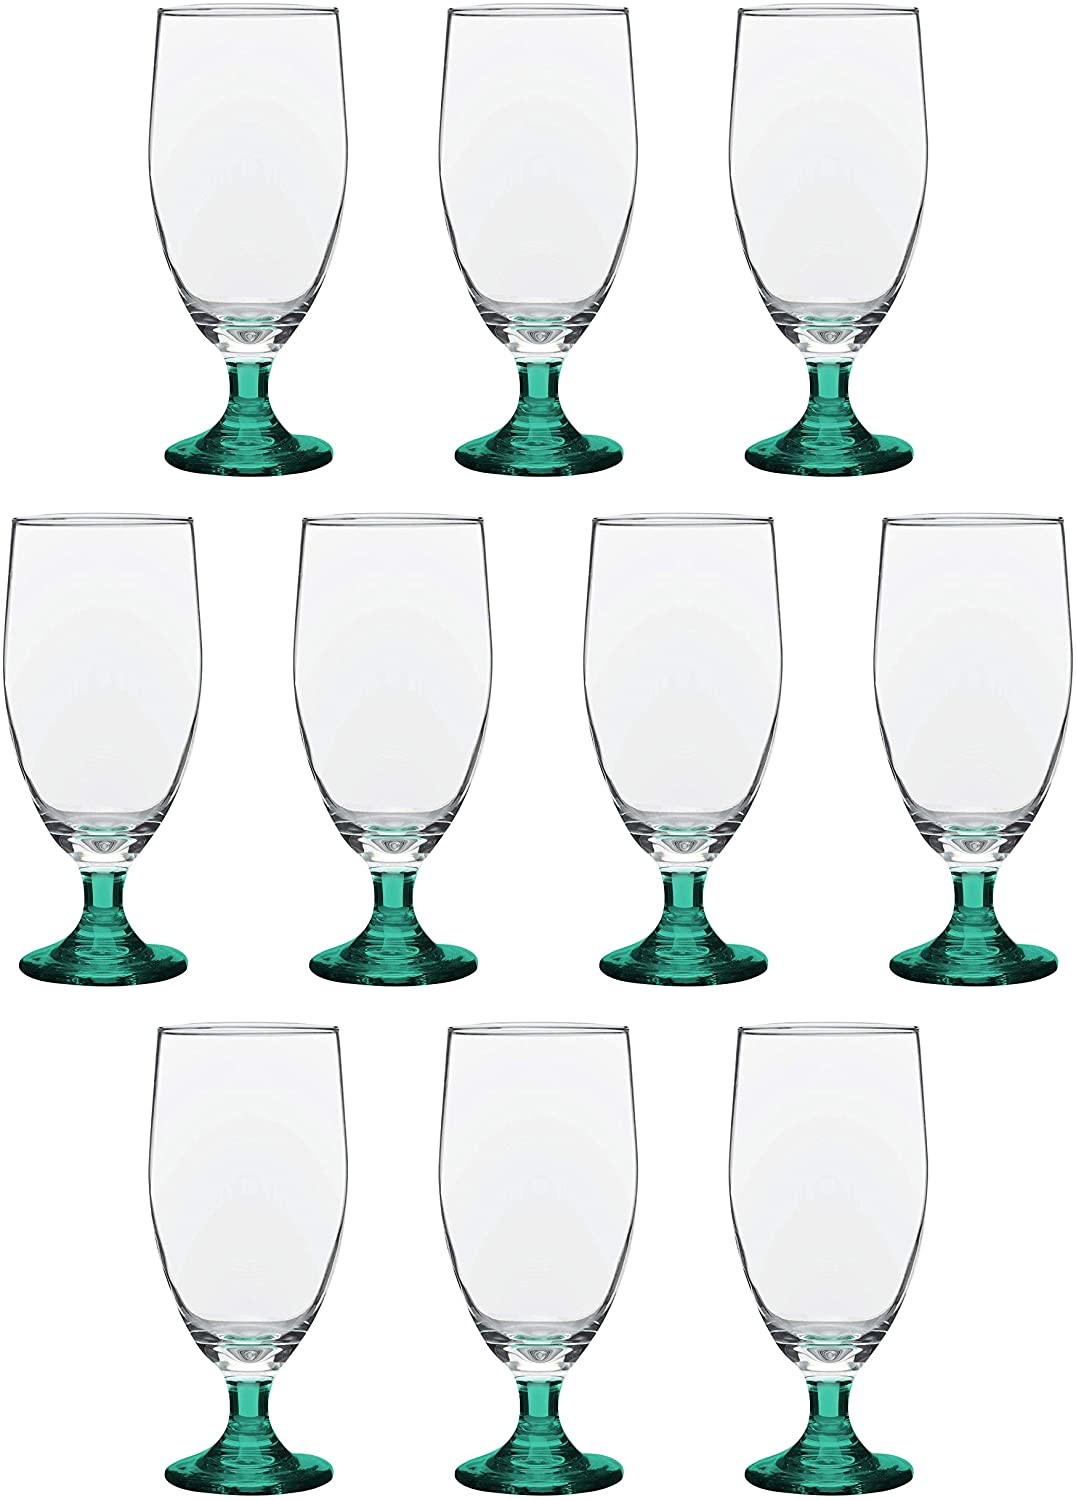 Large Water Goblet Glasses 20 Oz By Toscana - 10 pack - Great For Iced Tea Ice Water Casual Dinner - Stemmed Footed Glass Glassware - For A Restaurant Wedding Everyday Purpose - Green